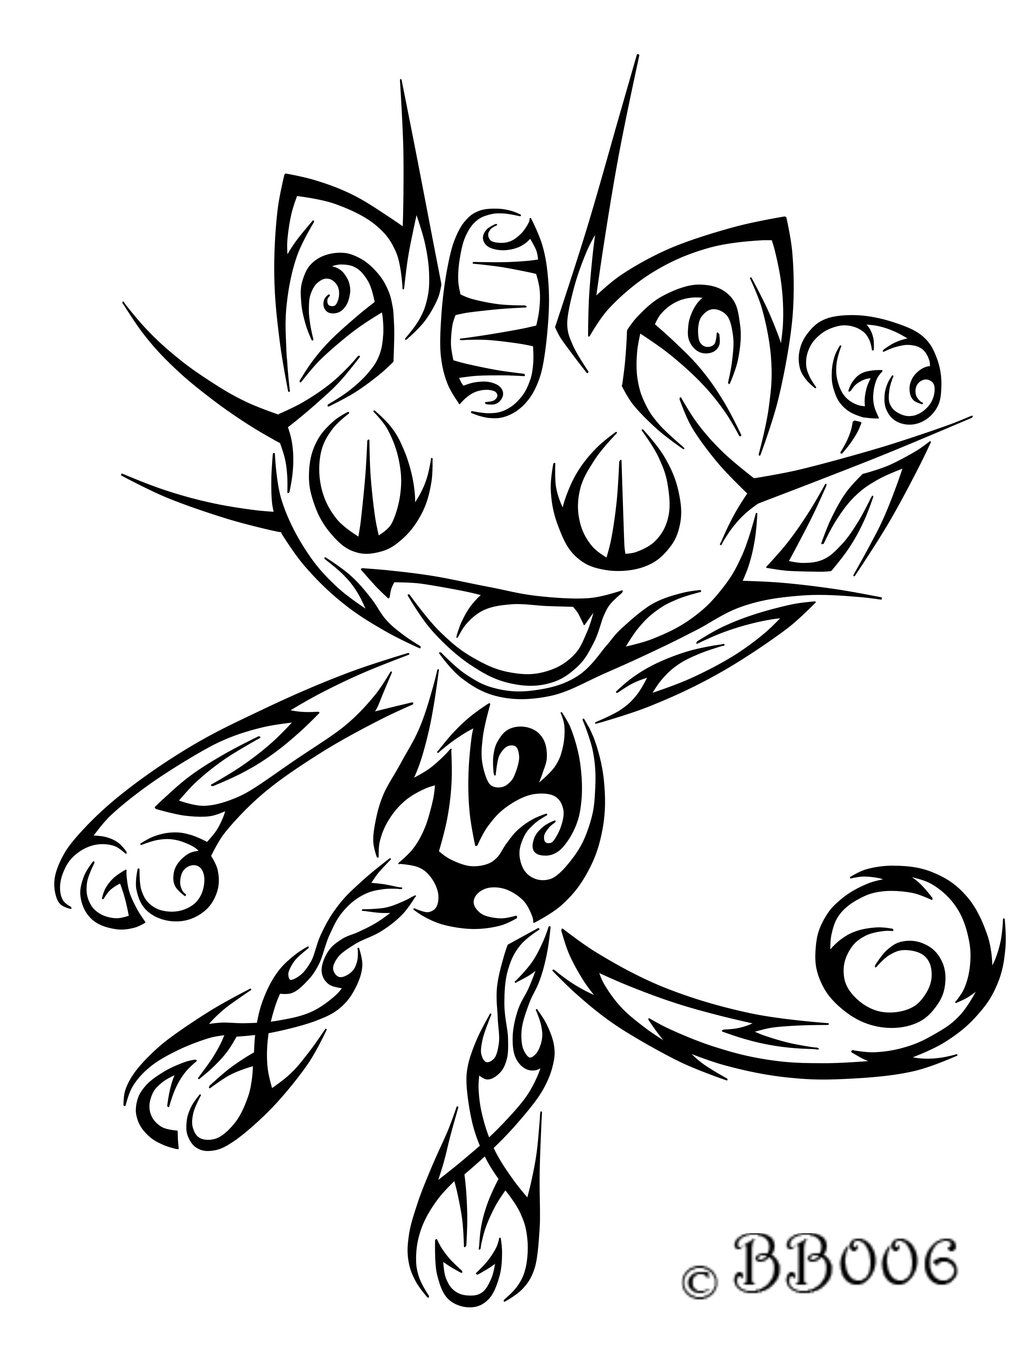 Pokemon coloring pages pancham - 052 Meowth